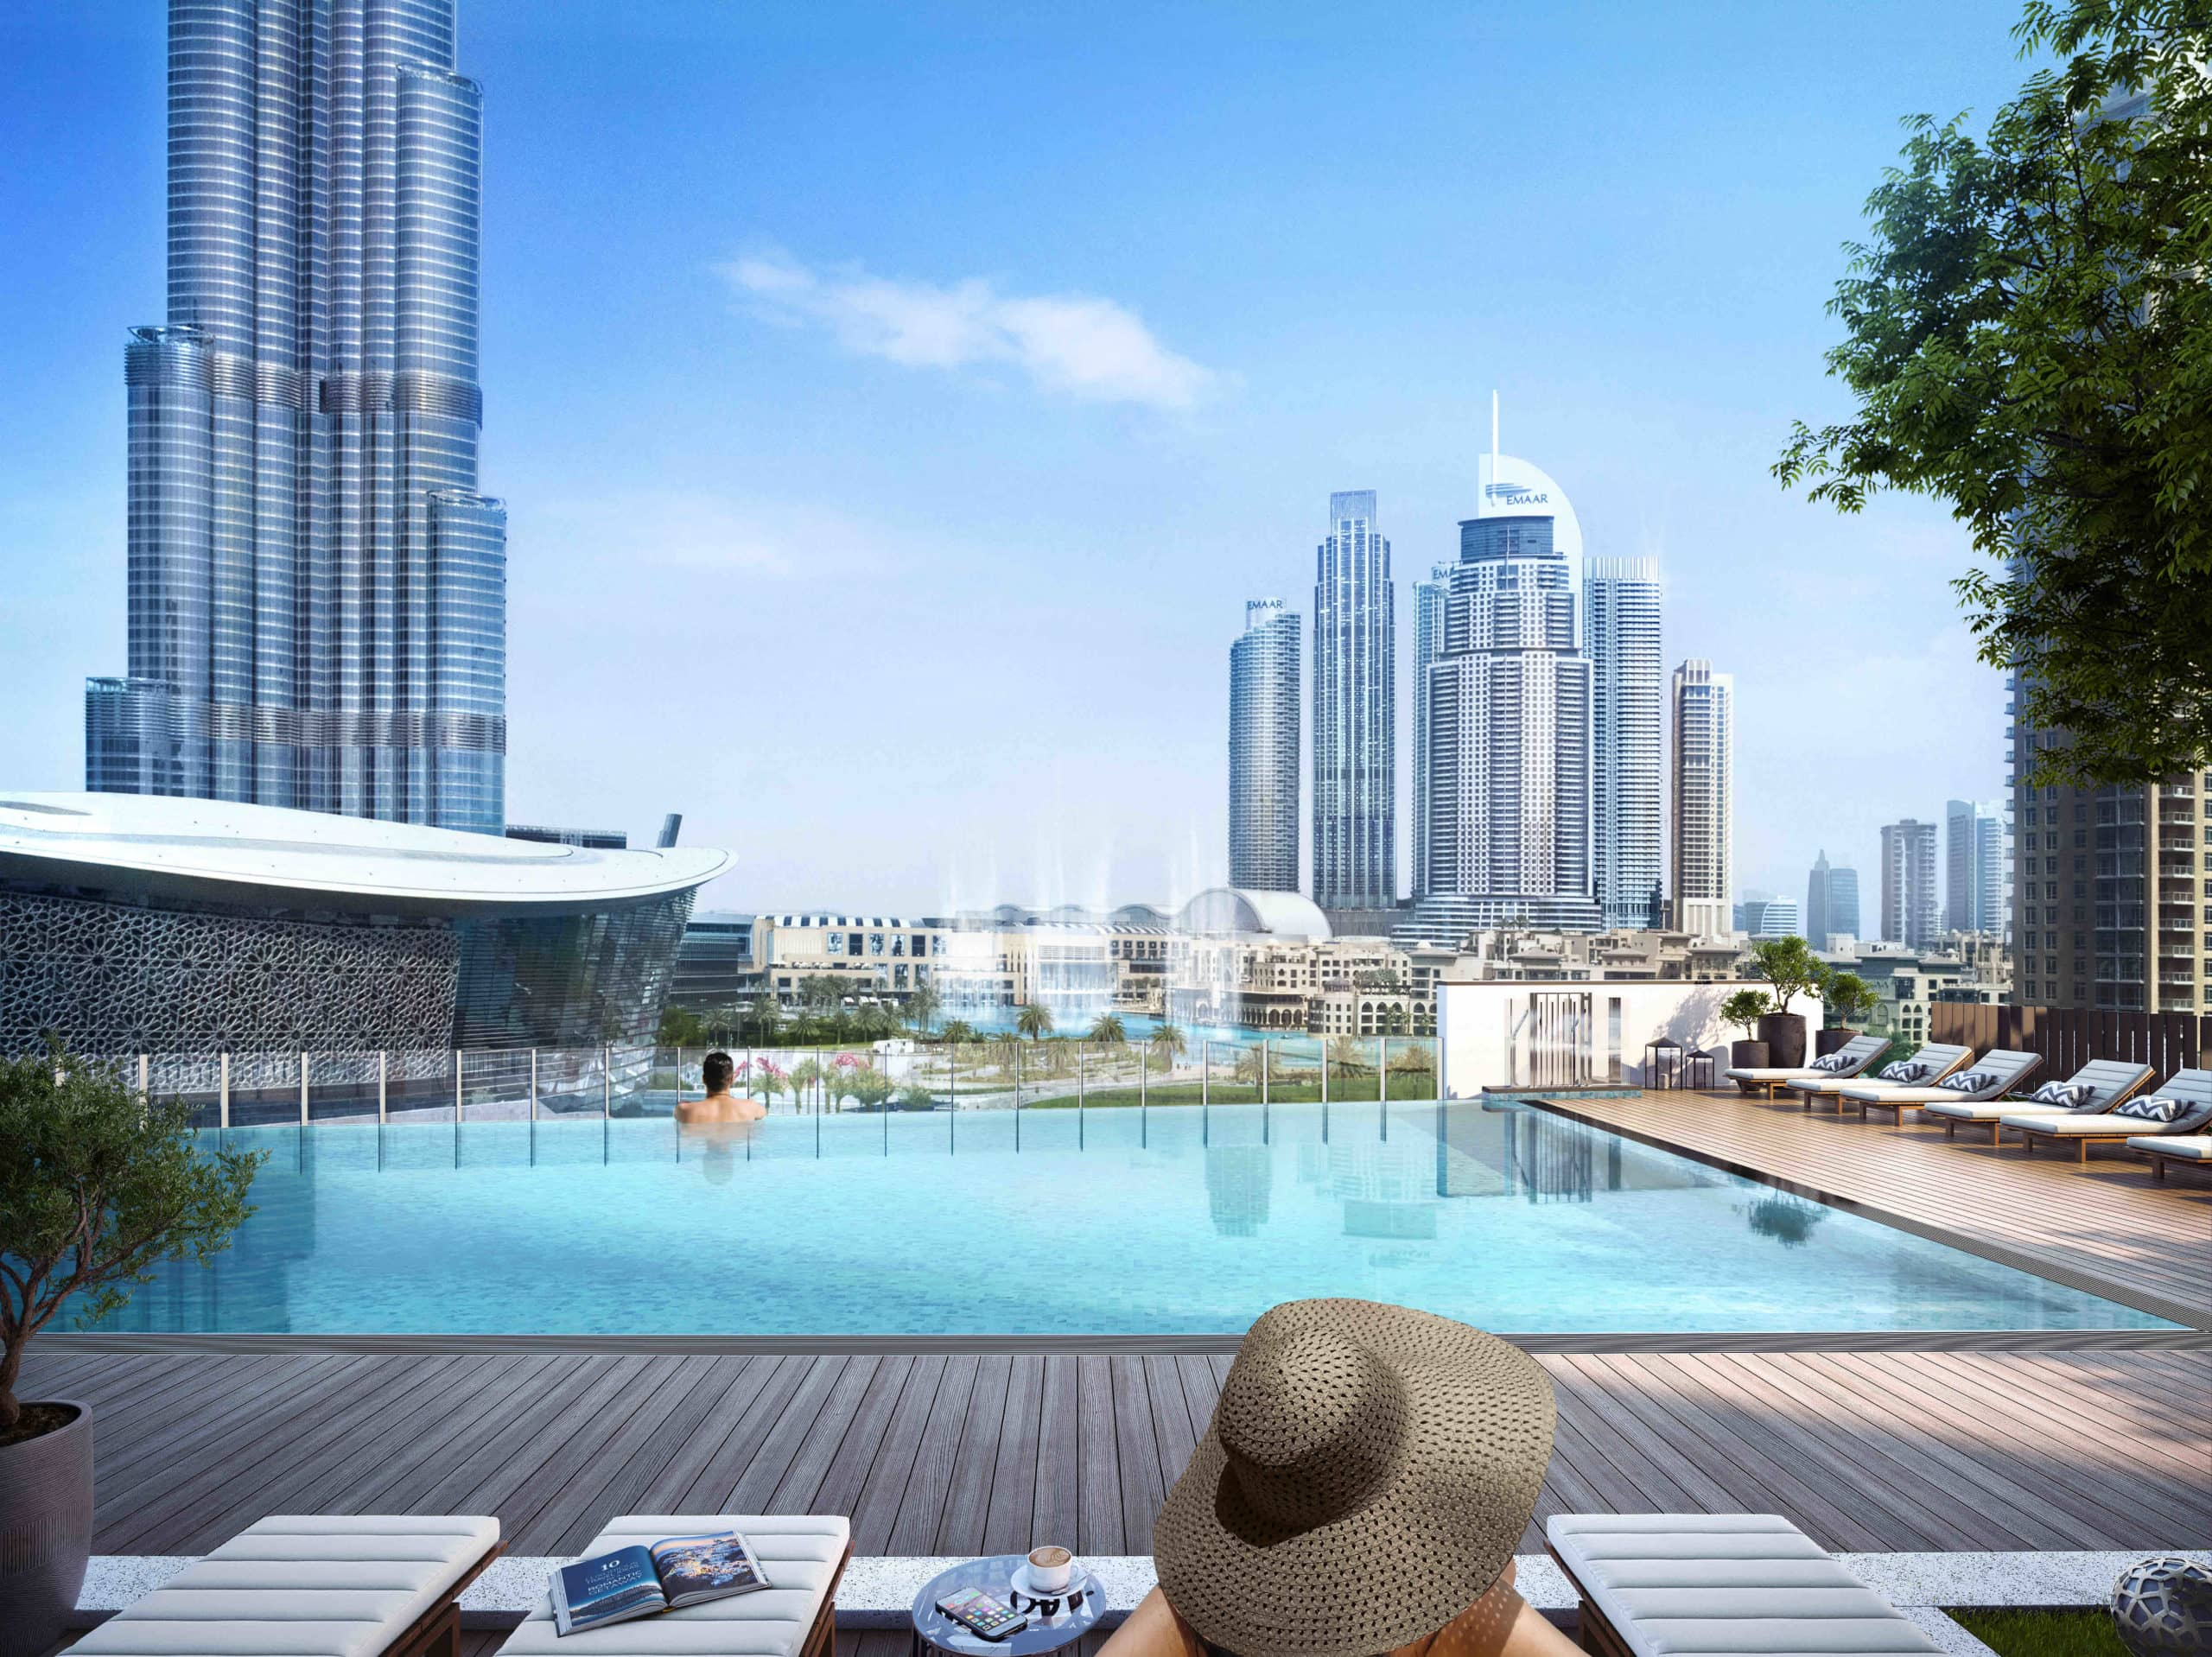 Buy A Real Estate Property in Dubai with Bitcoin